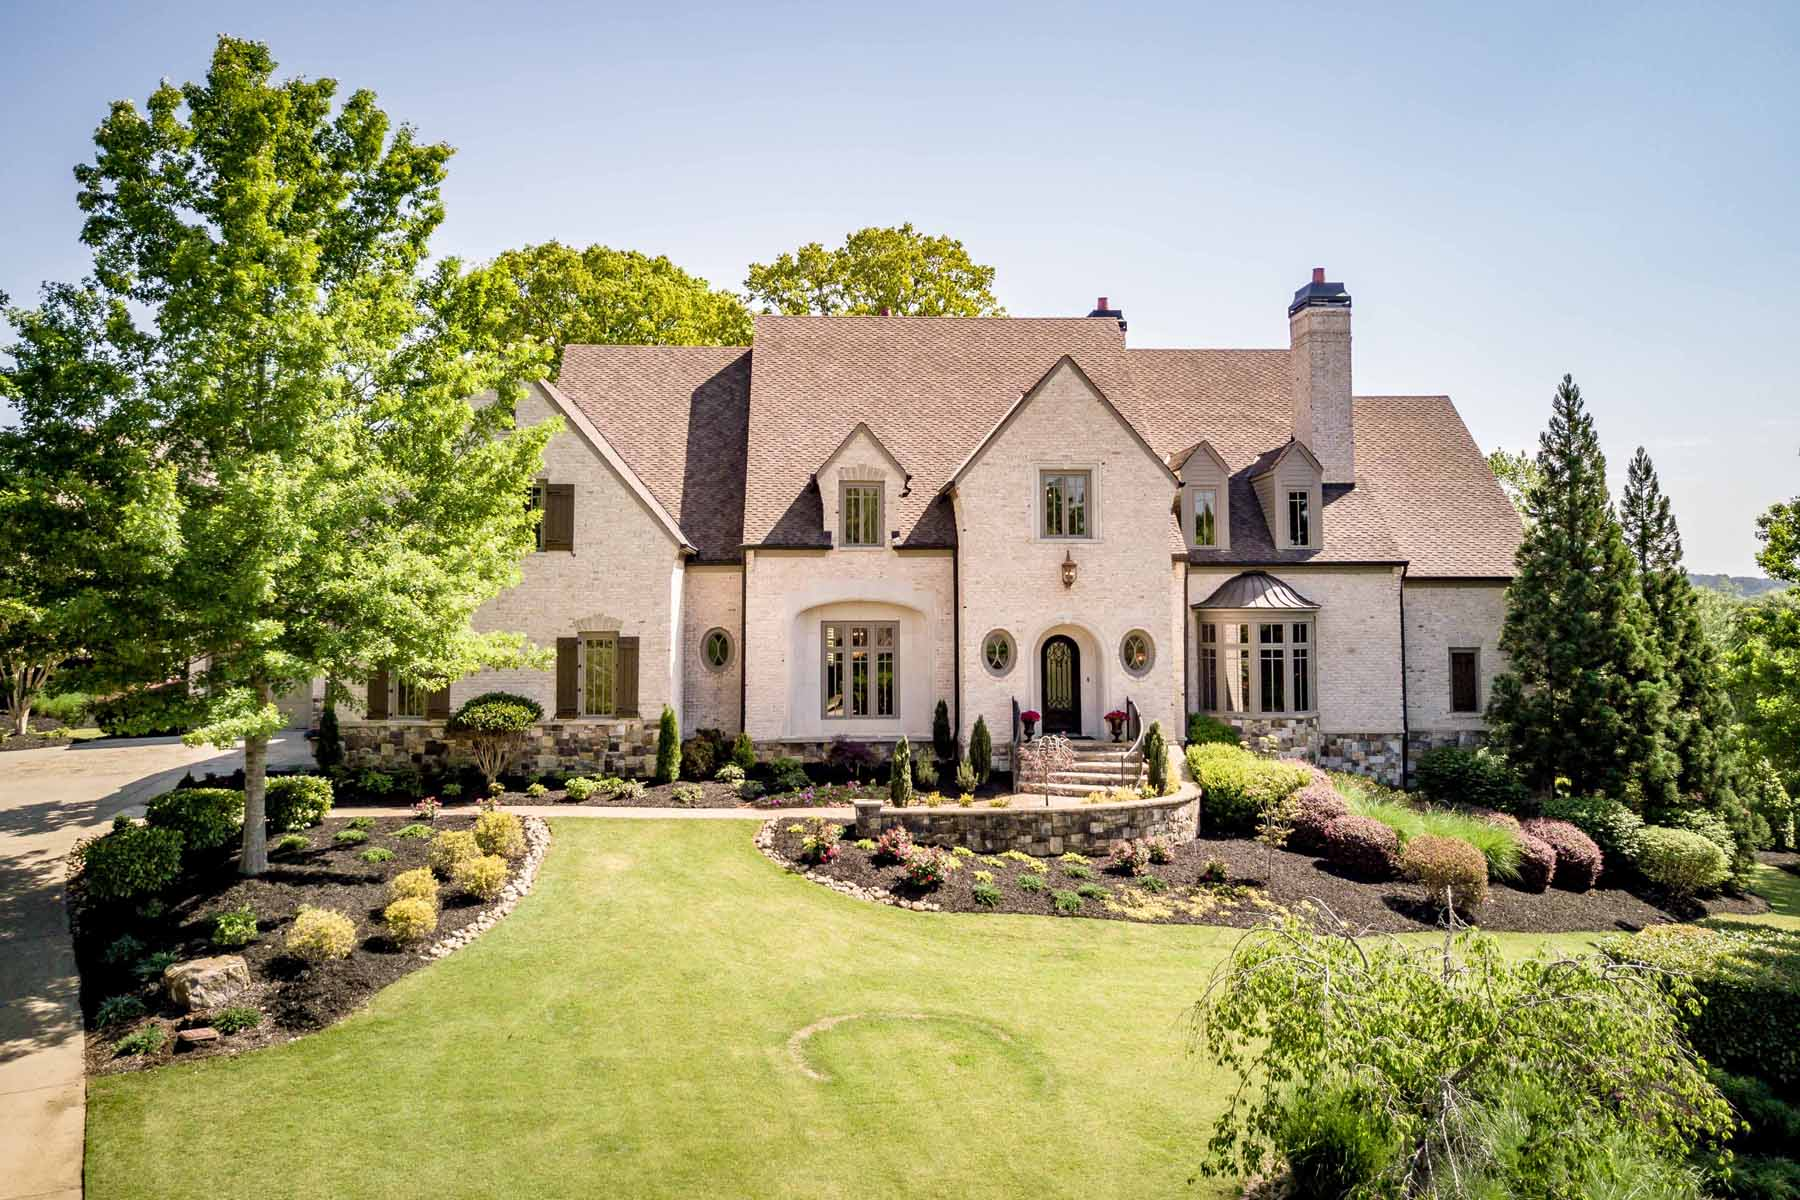 Single Family Home for Active at Exquisite Masterpiece 105 Manor Lake Court Milton, Georgia 30004 United States